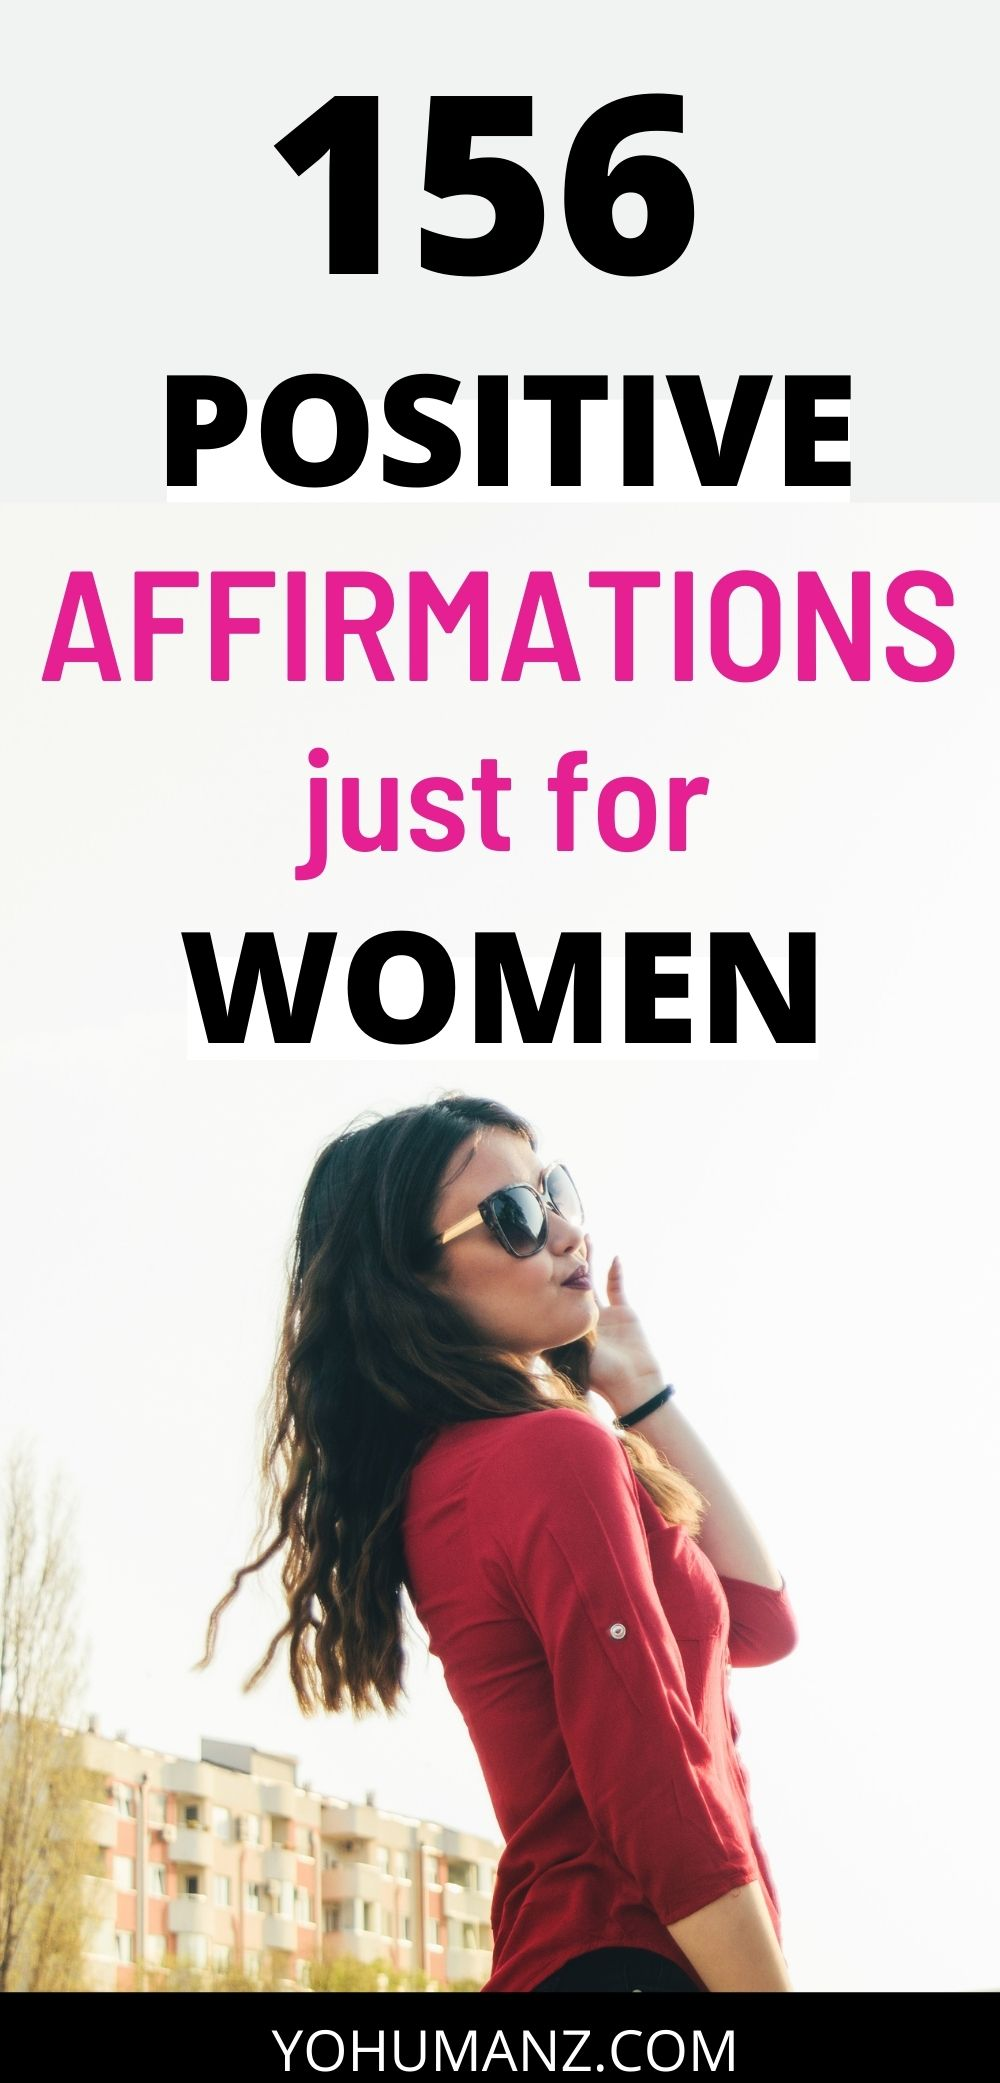 Positive Affirmations That Work for Women